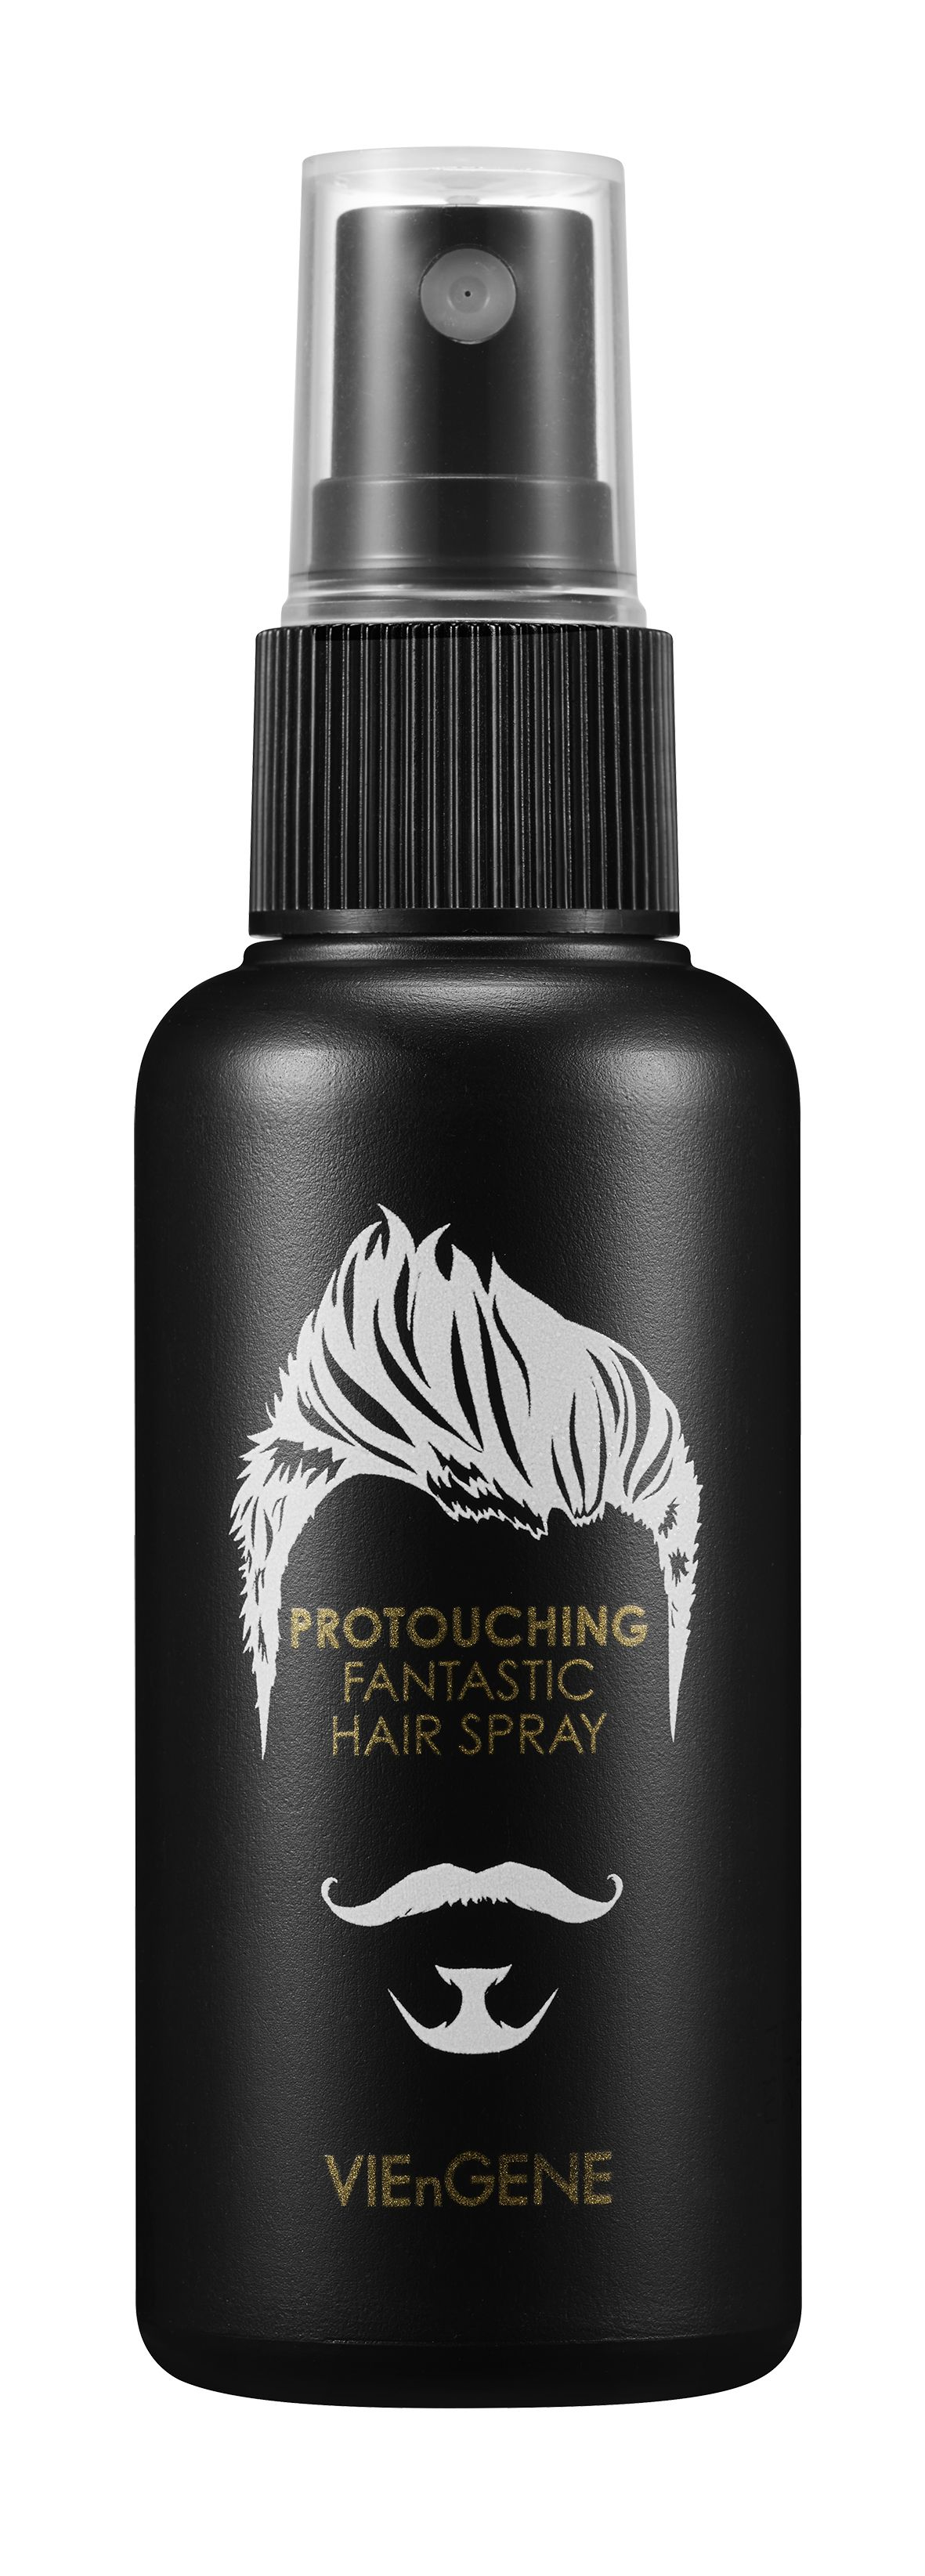 VIEnGENE Protouching Fantastic Hair Spray 60G